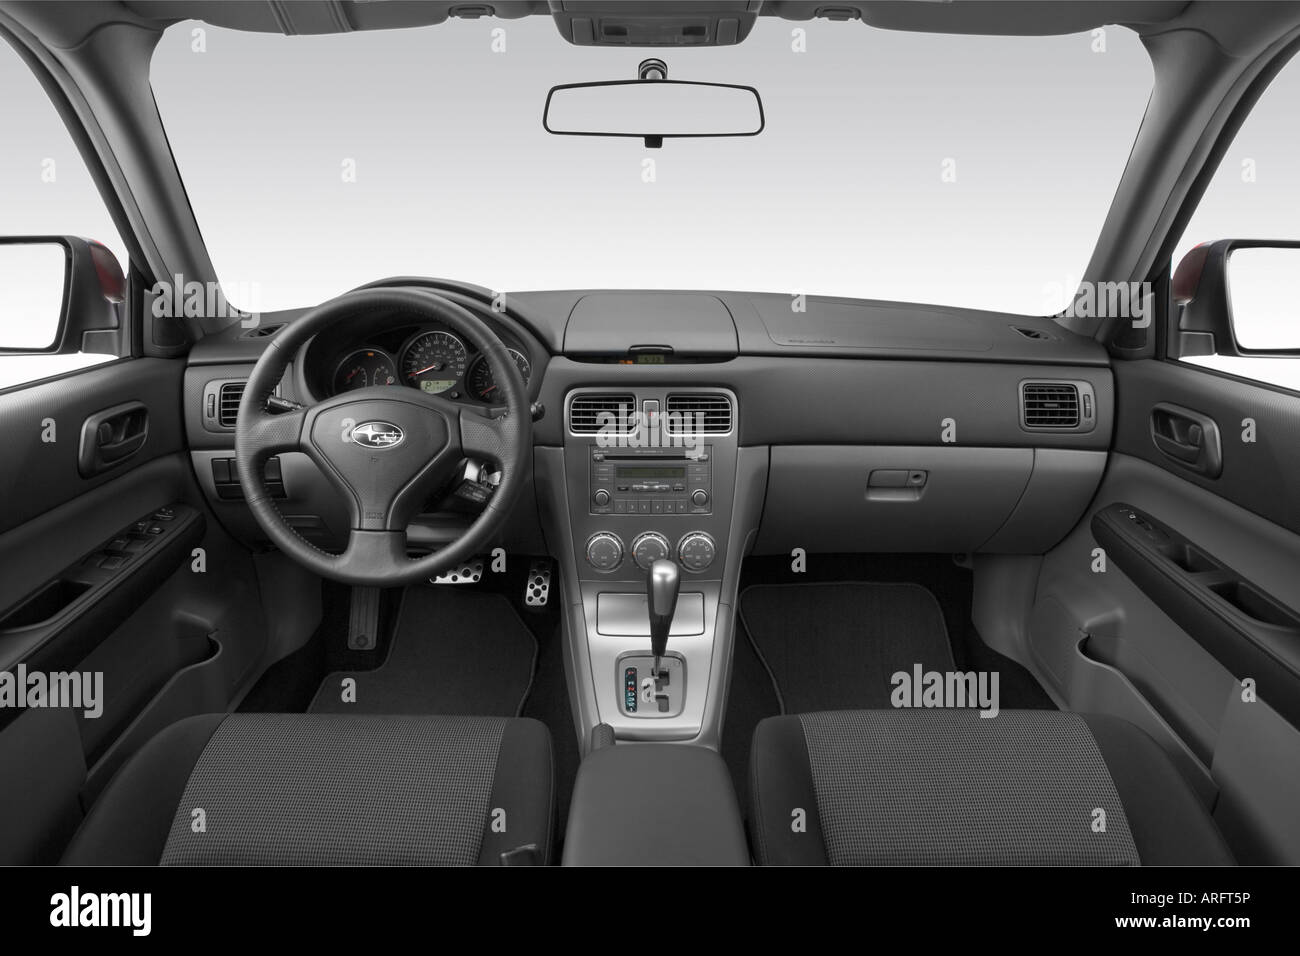 2008 subaru forester sports 2.5 x in red - dashboard, center